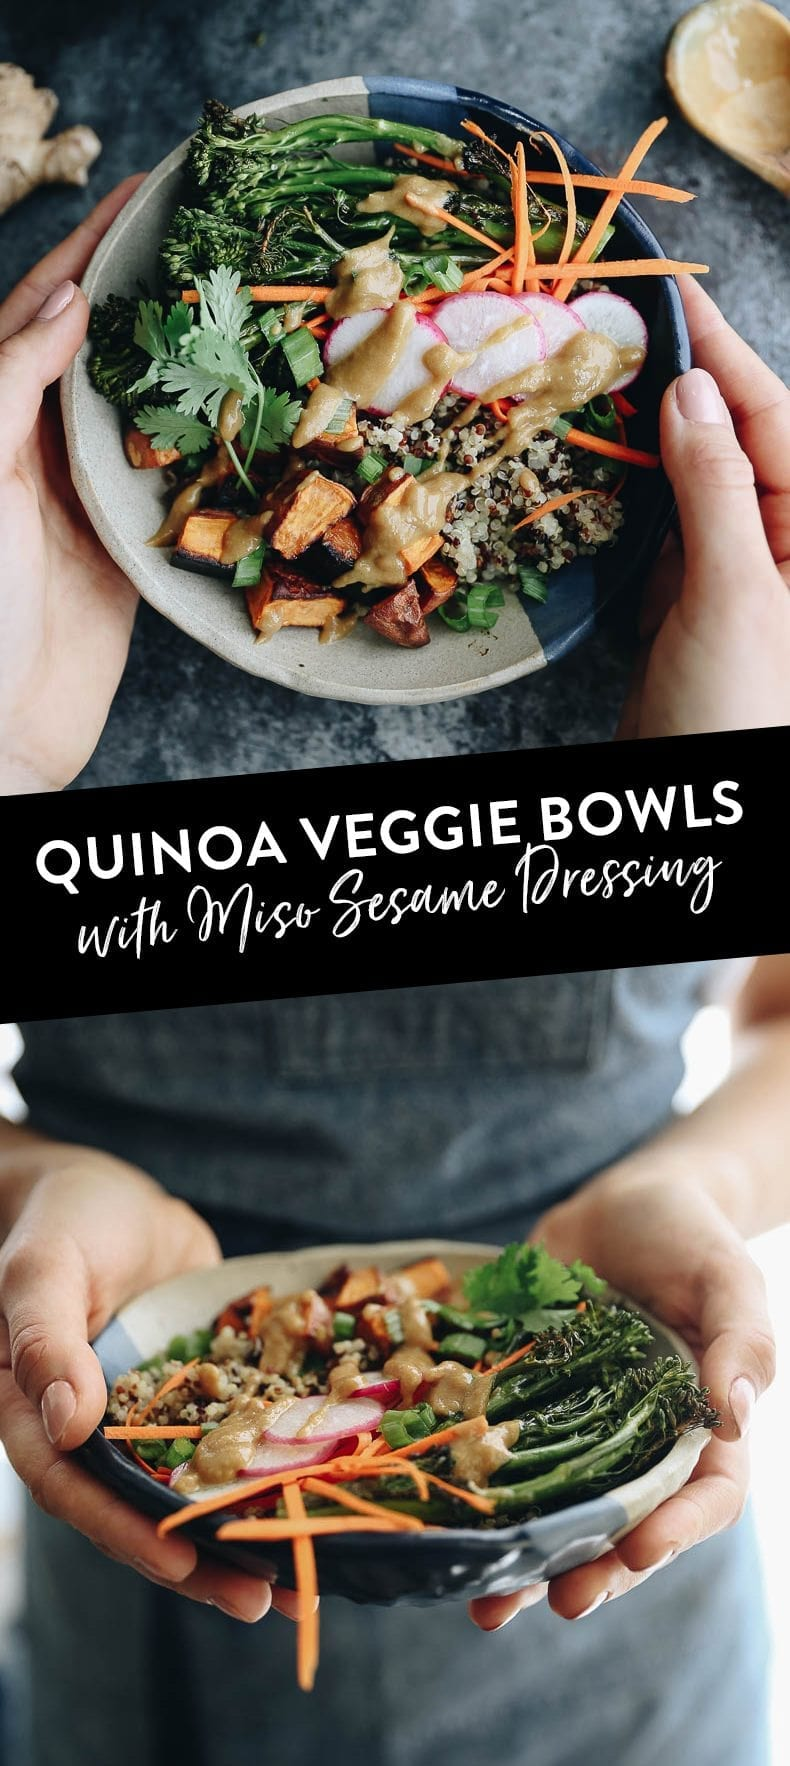 This quick and easy recipe for quinoa veggie bowls with miso sesame dressing makes a filling #vegan and #glutenfree meal that can all be eaten in one bowl!